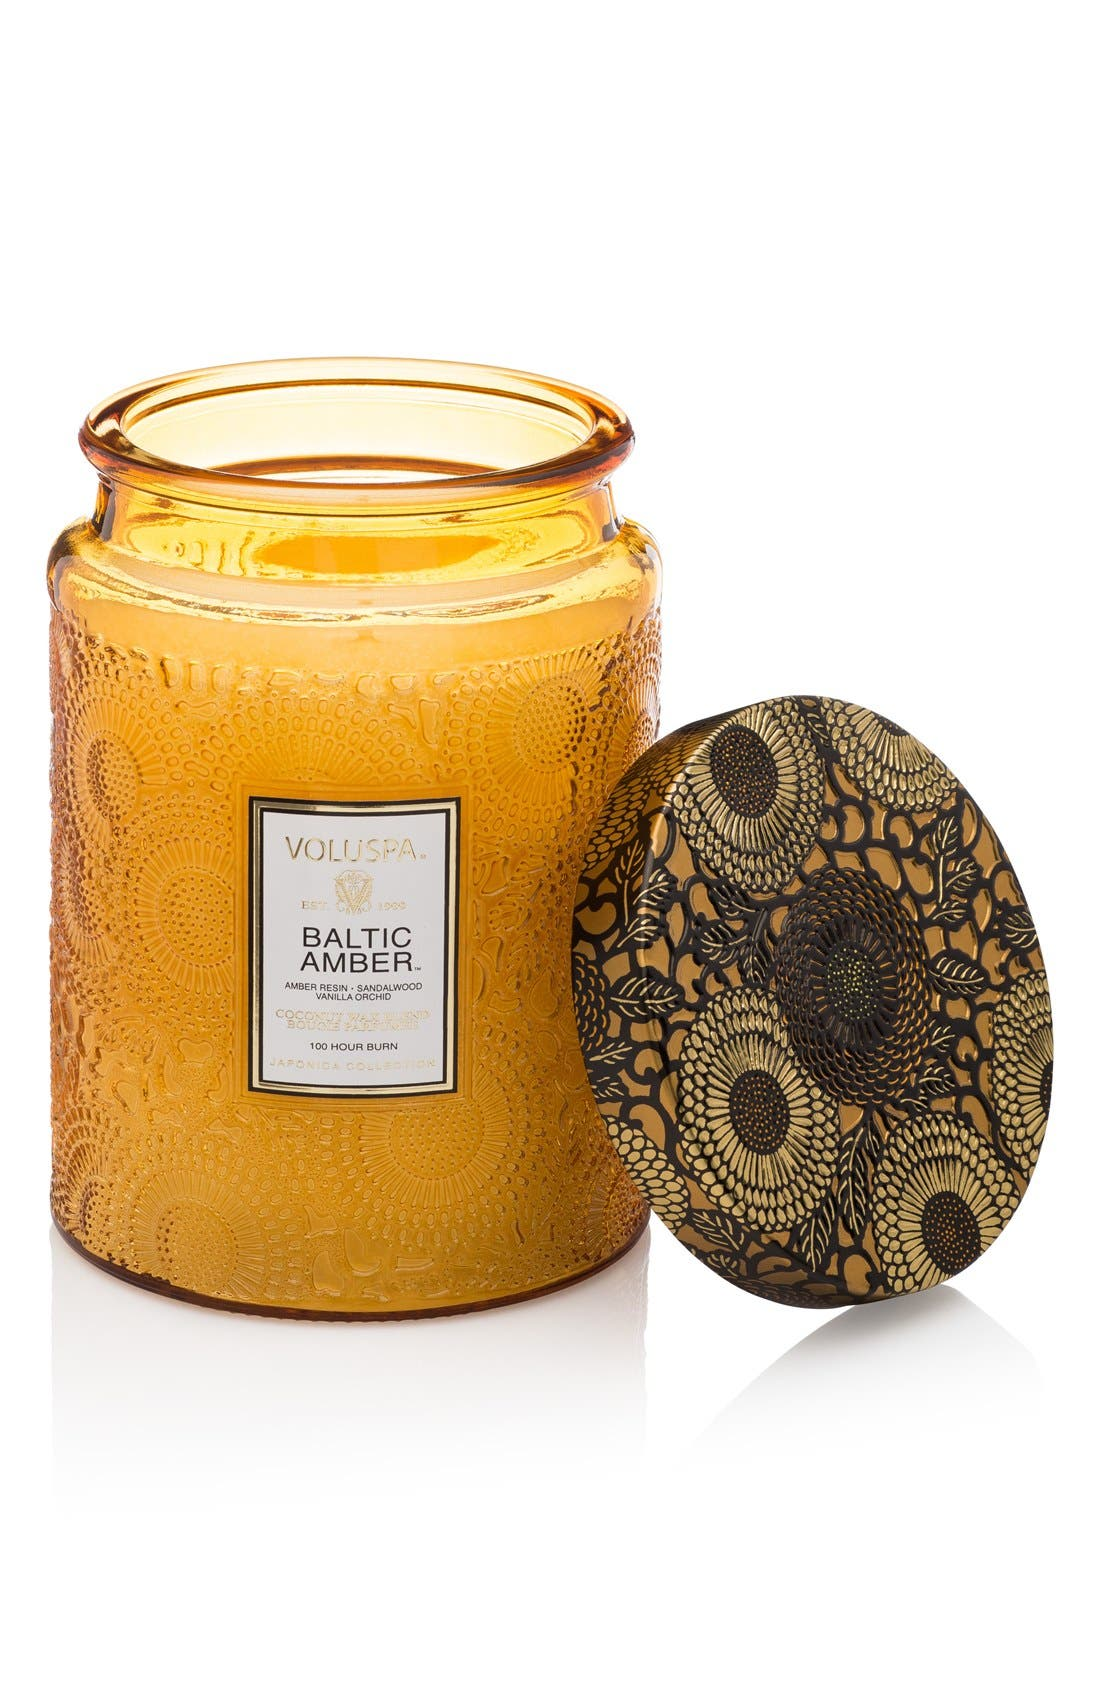 Main Image - Voluspa Japonica Baltic Amber Large Glass Jar Candle